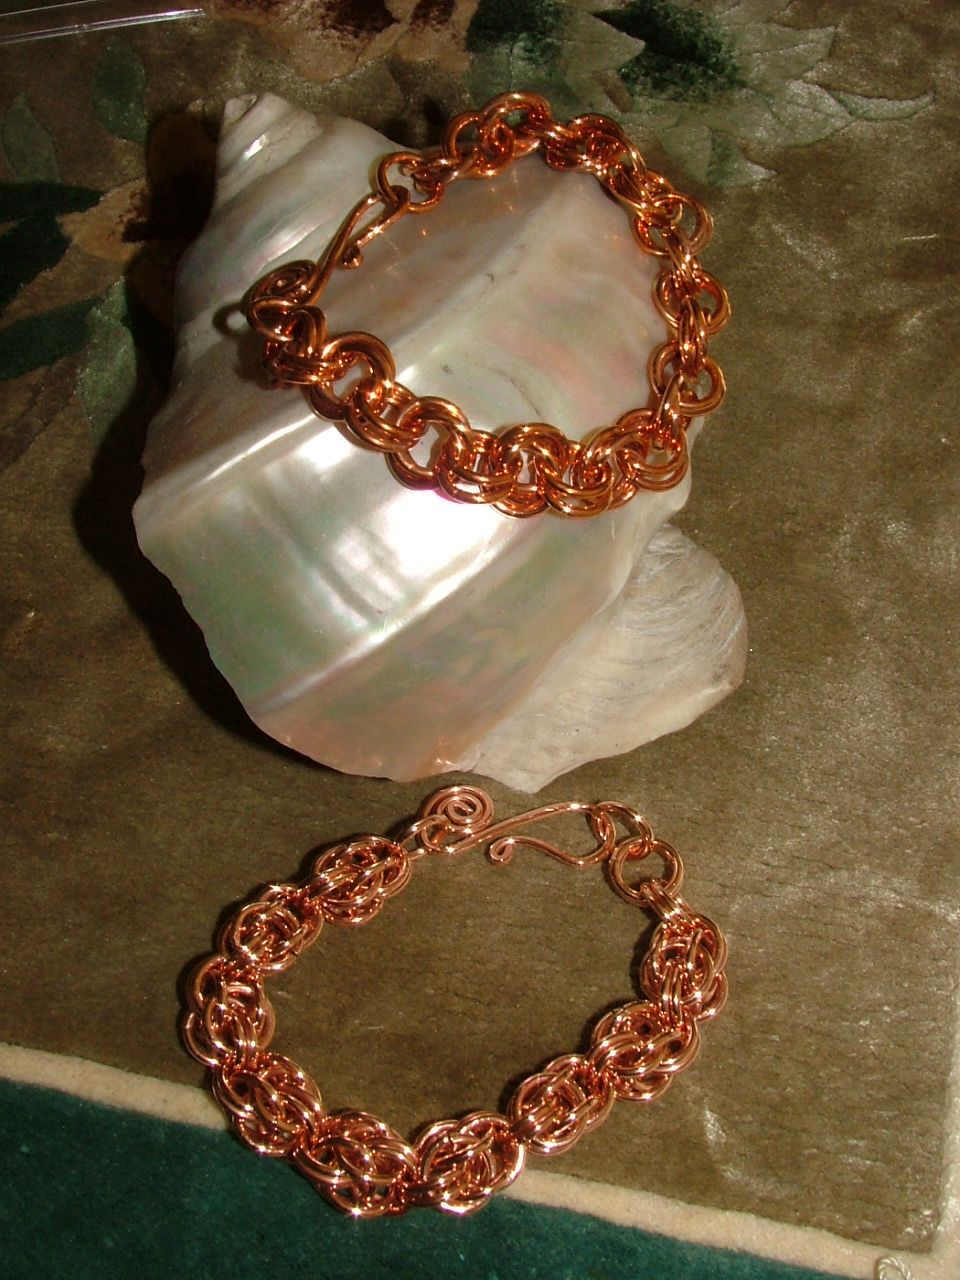 Copper chain maille bracelets.